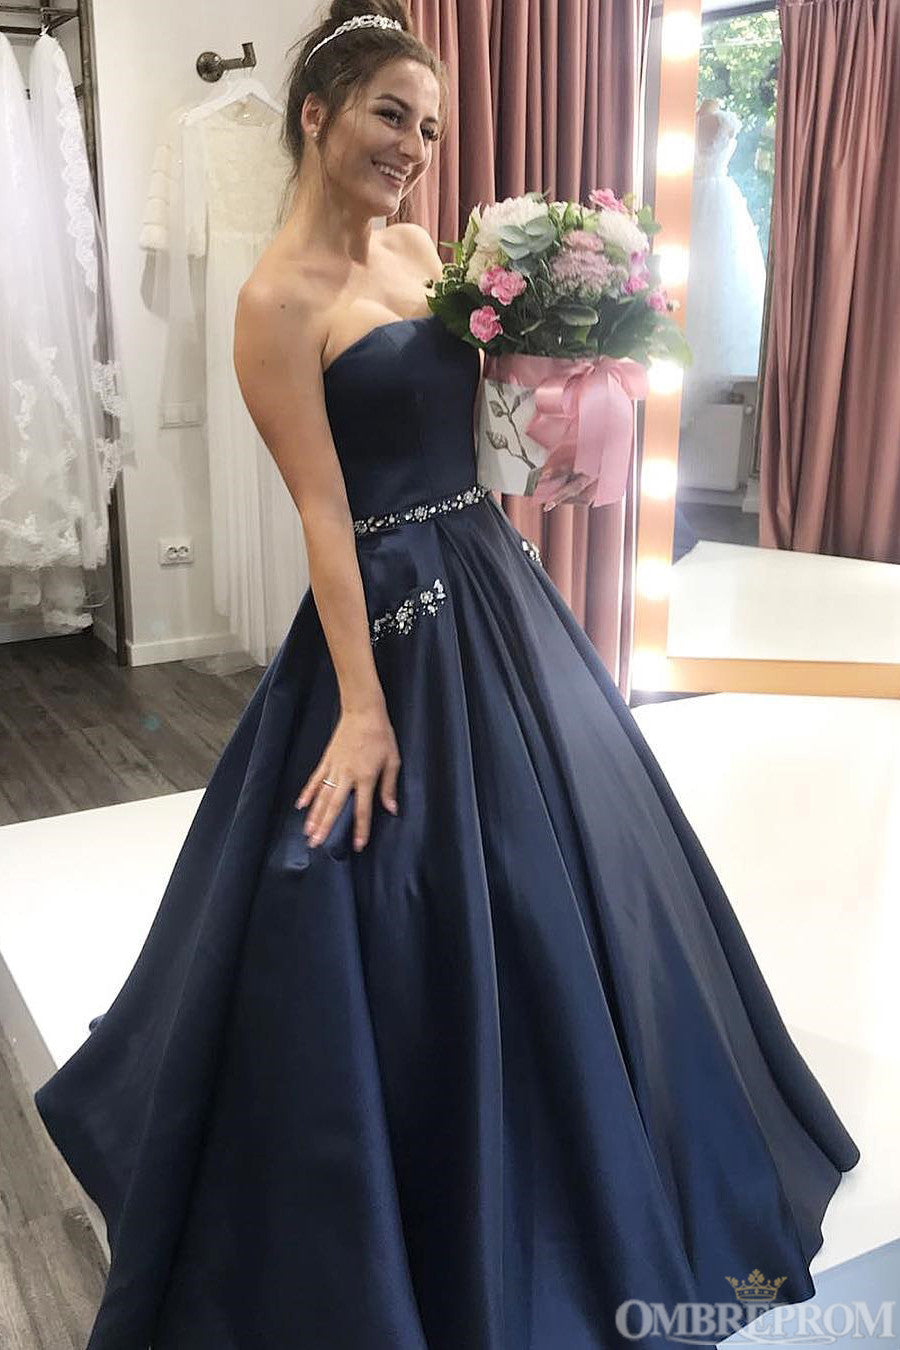 Simple Strapless A Line Sleeveless Ball Gowns Prom Dresses with Beaded P997